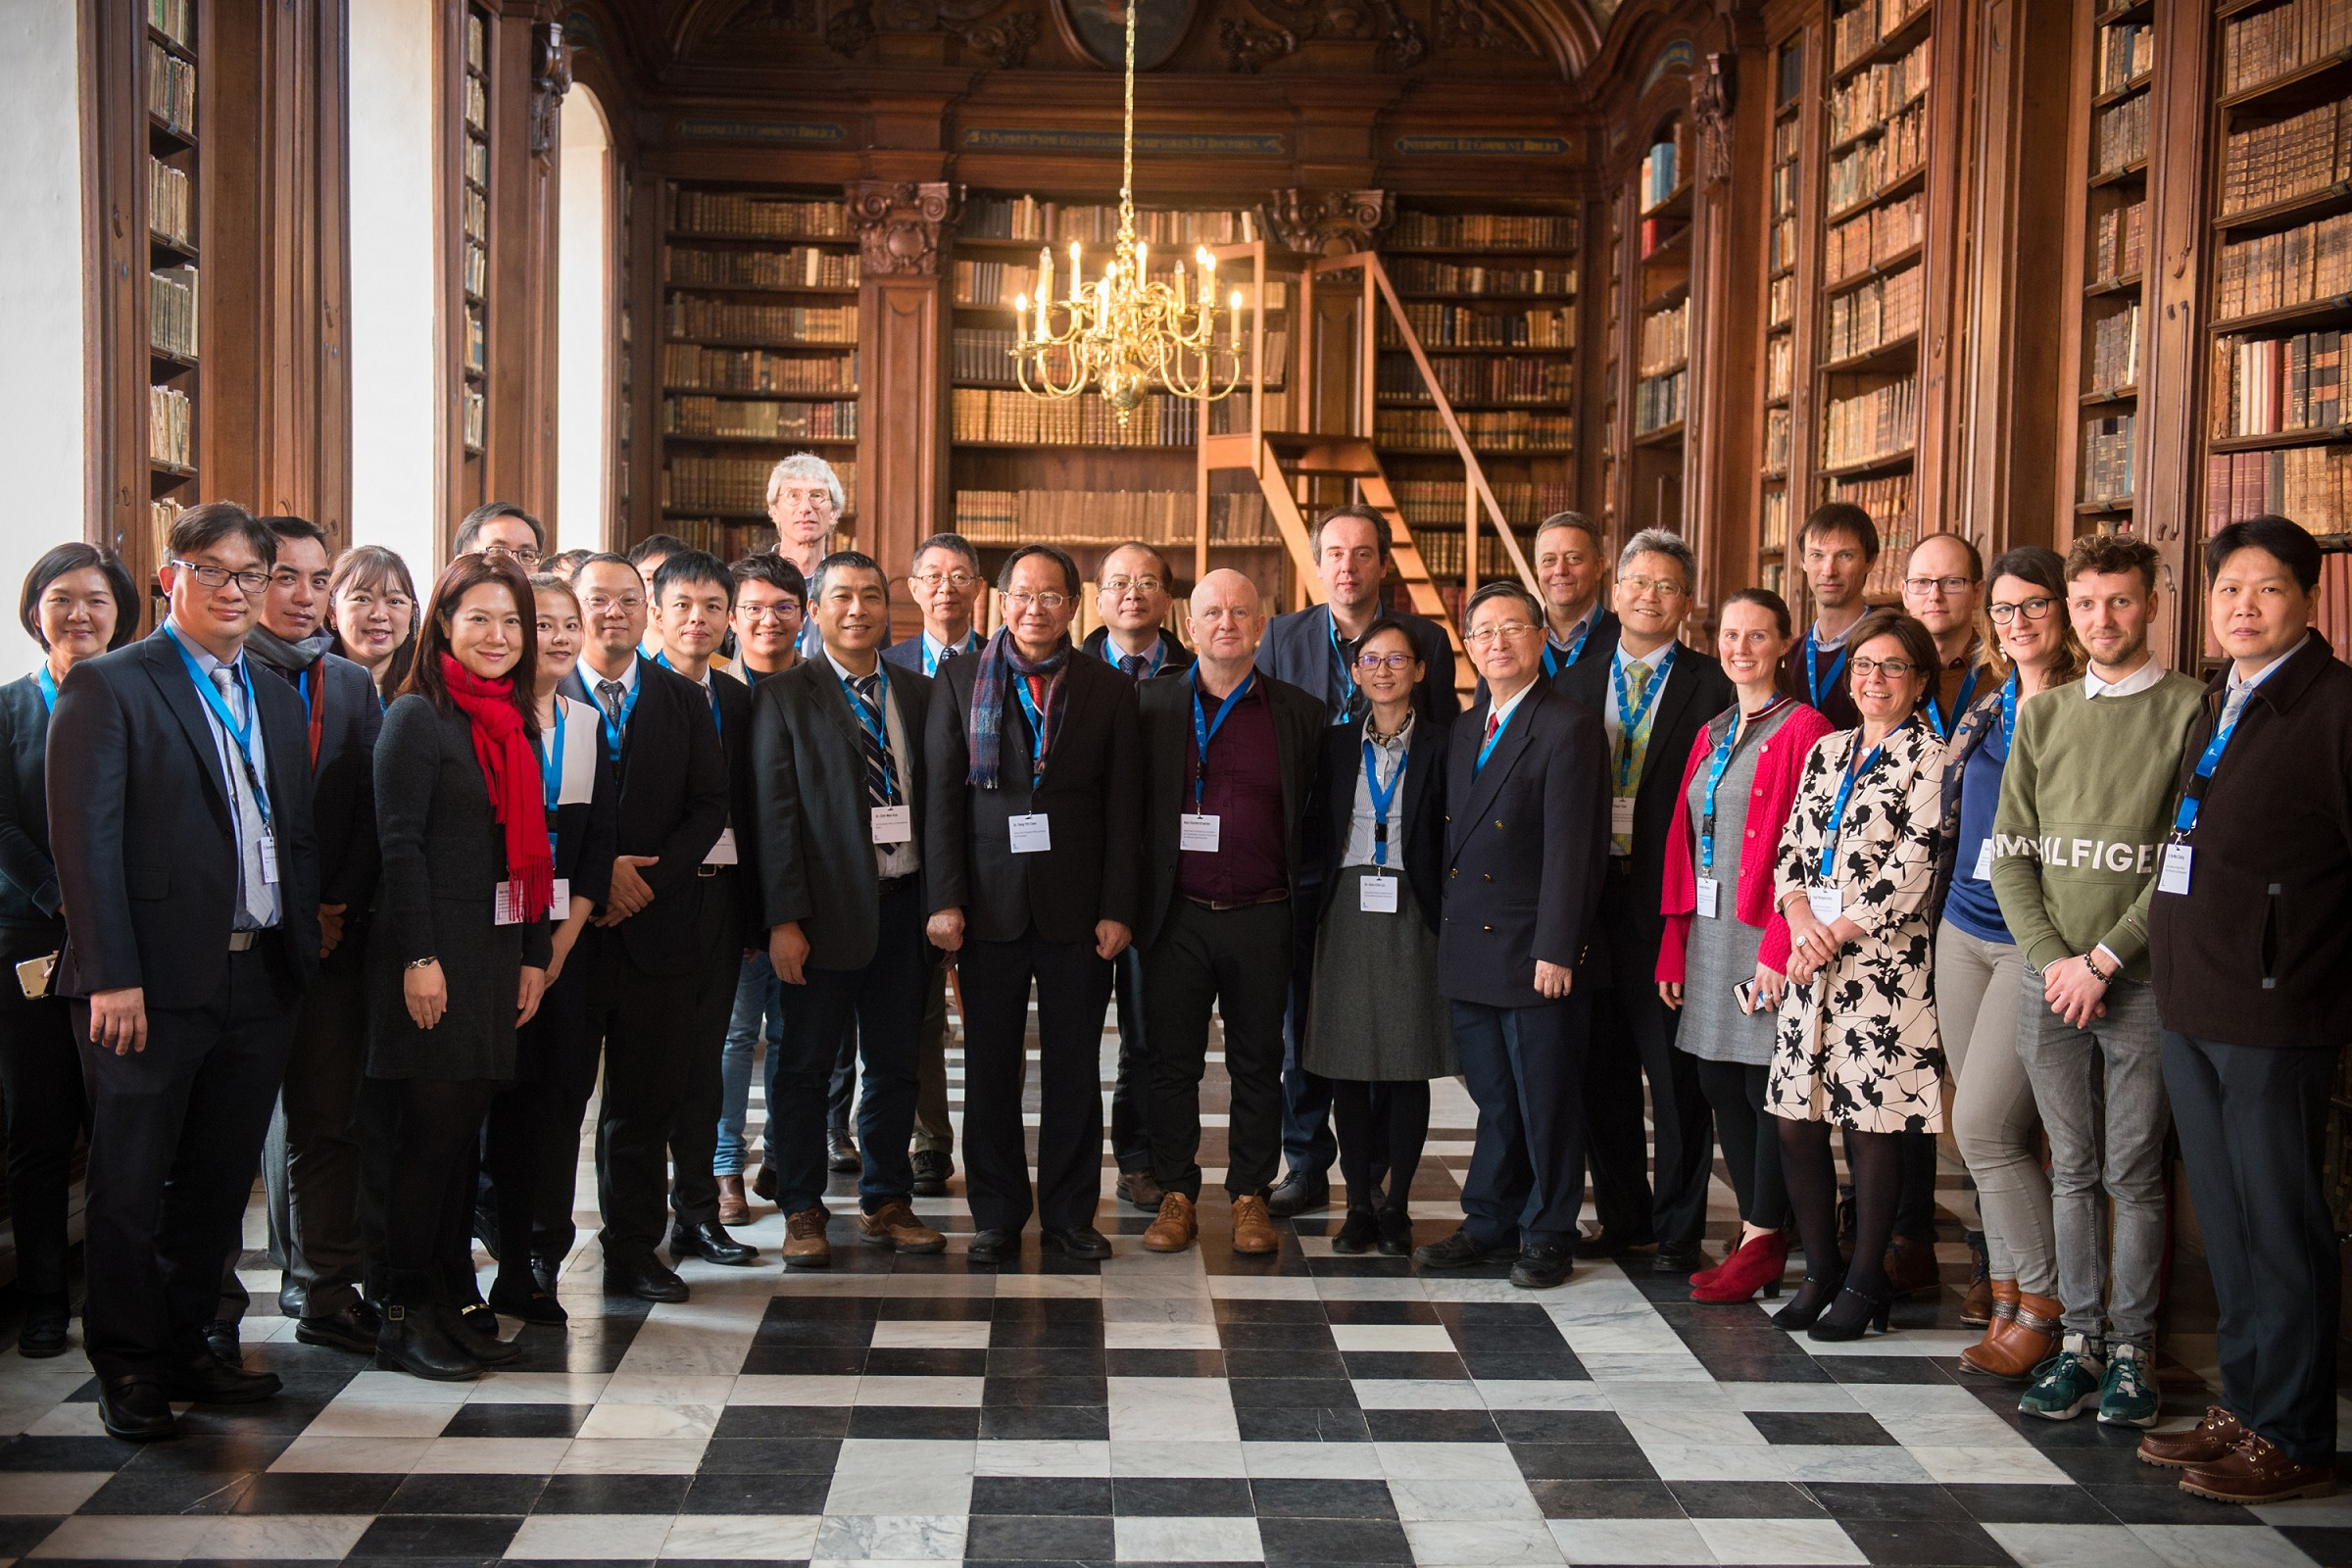 NSYSU signs MOU on triple-degree master program in photonics with Ghent University and Free University of Brussels during 2020 NSYSU-UGent Bilateral Workshop